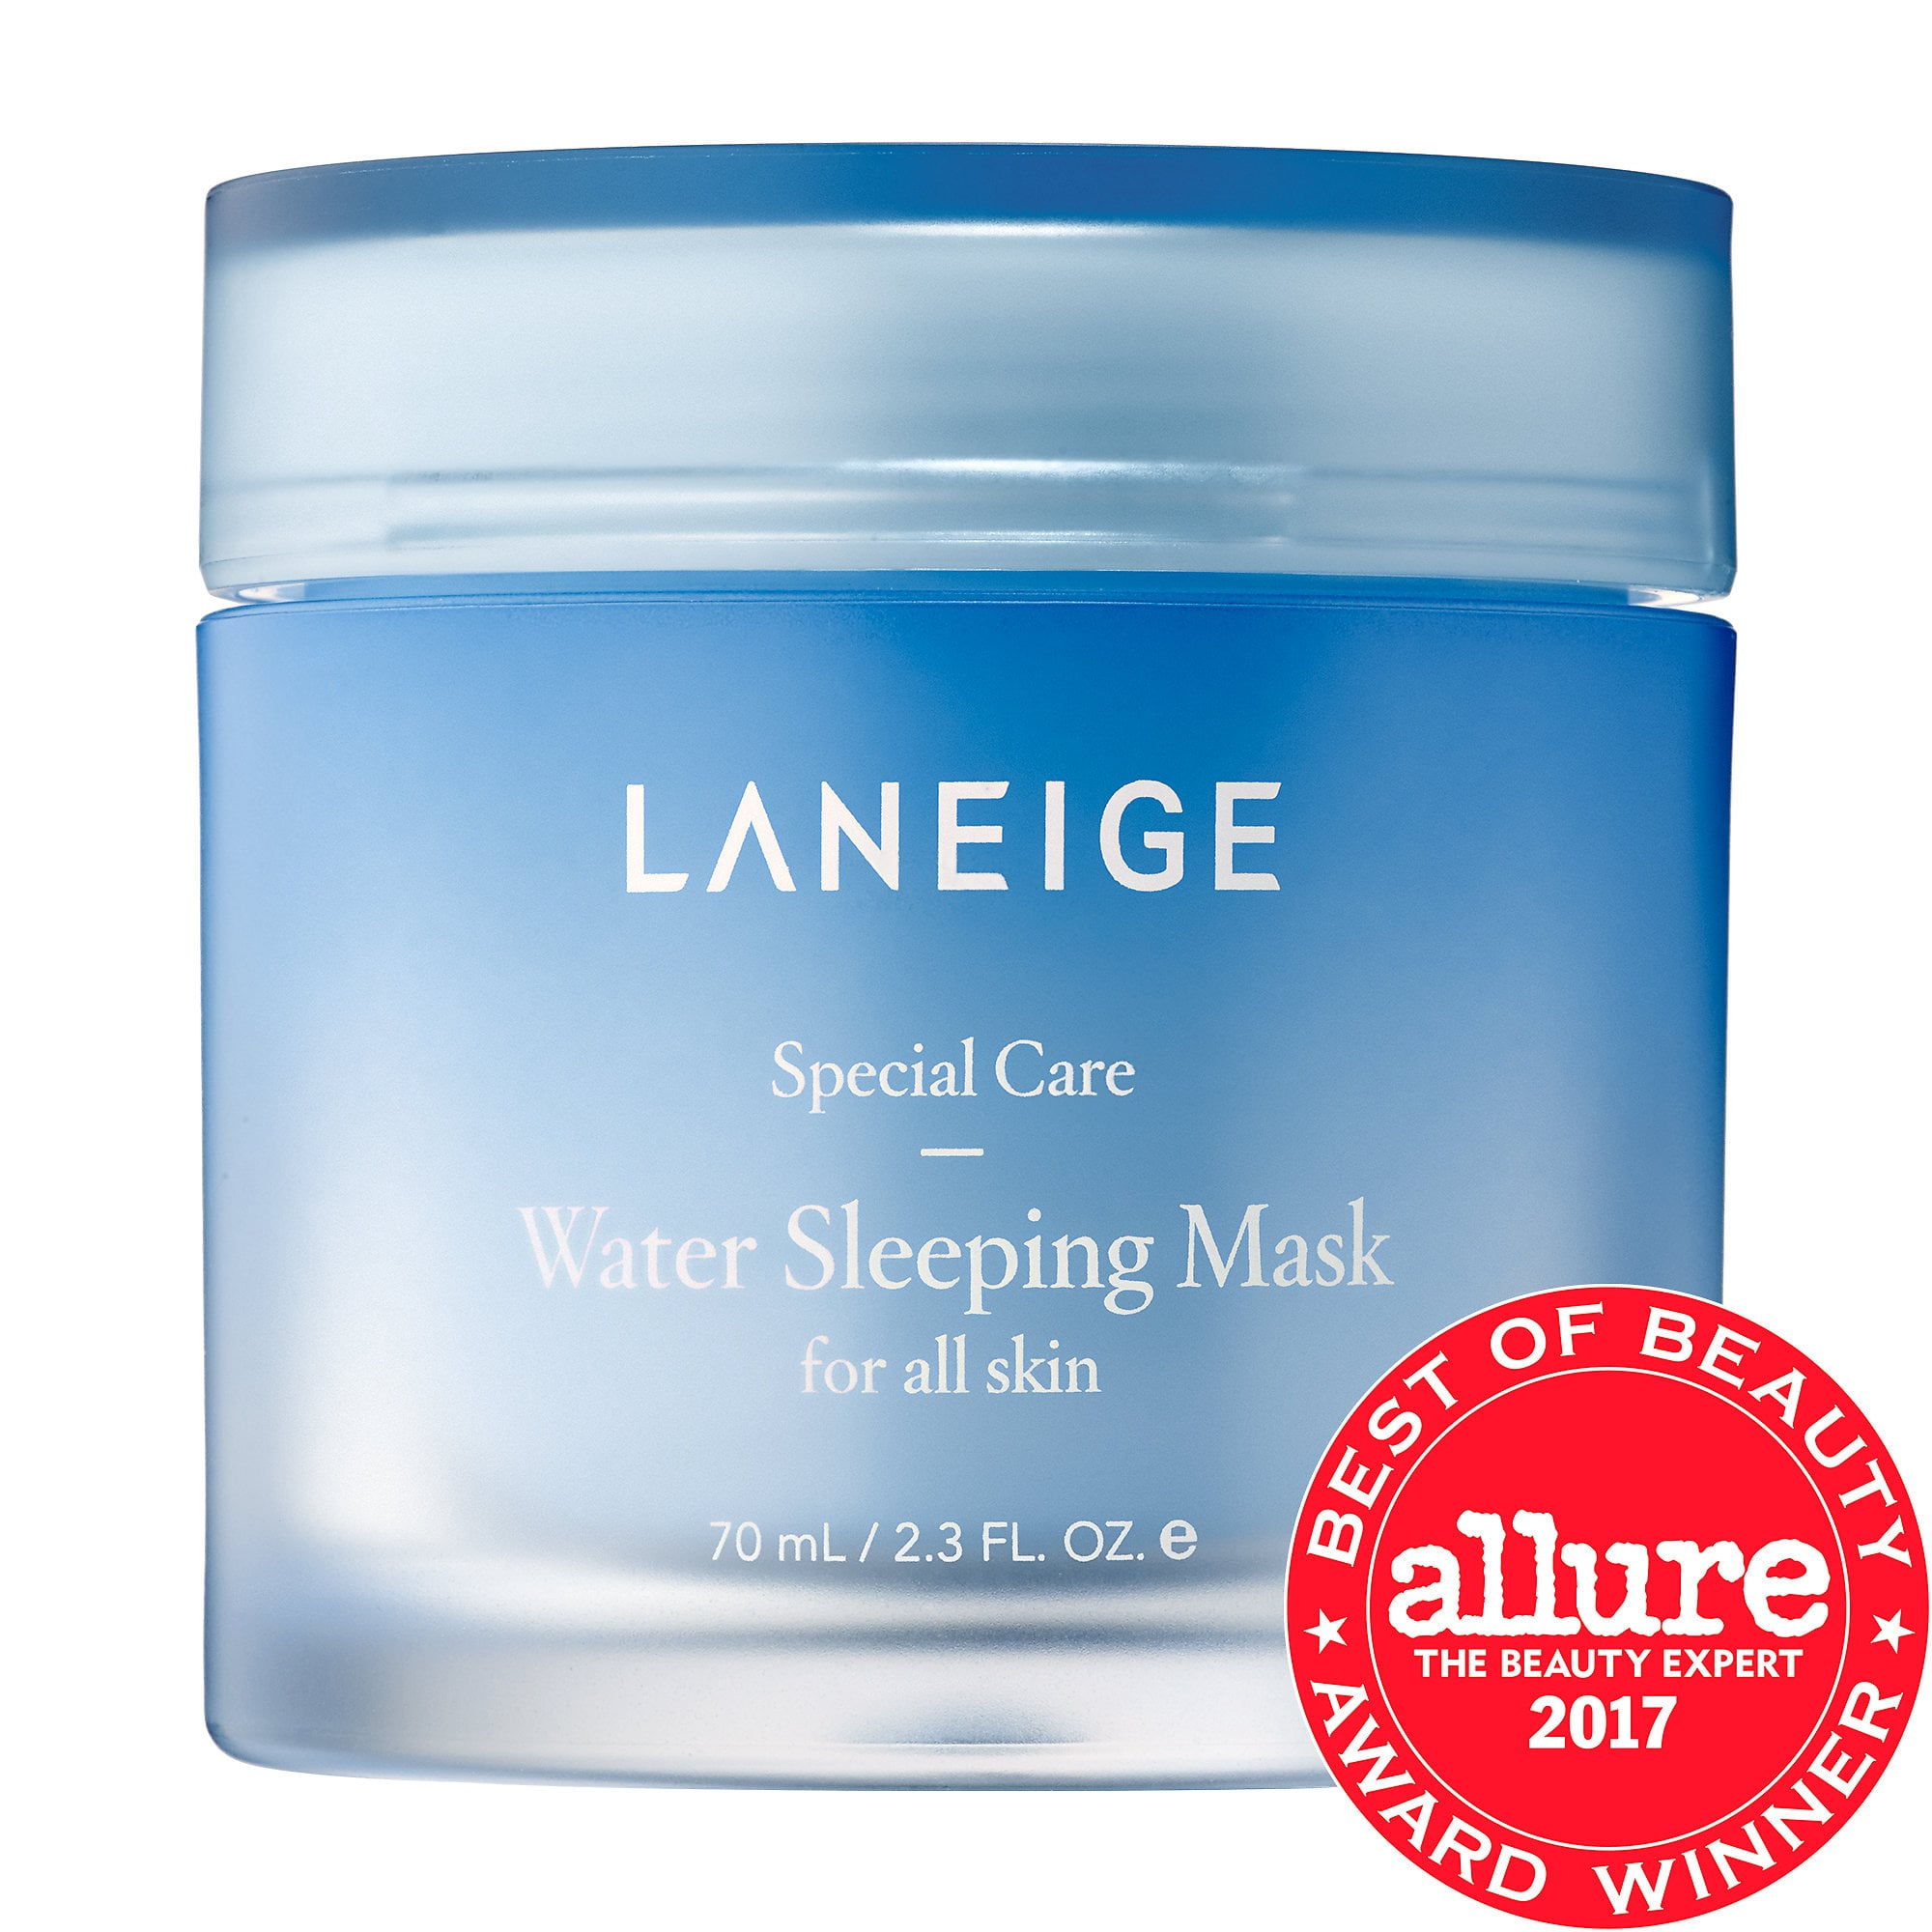 Laneige-Water Sleeping Mask